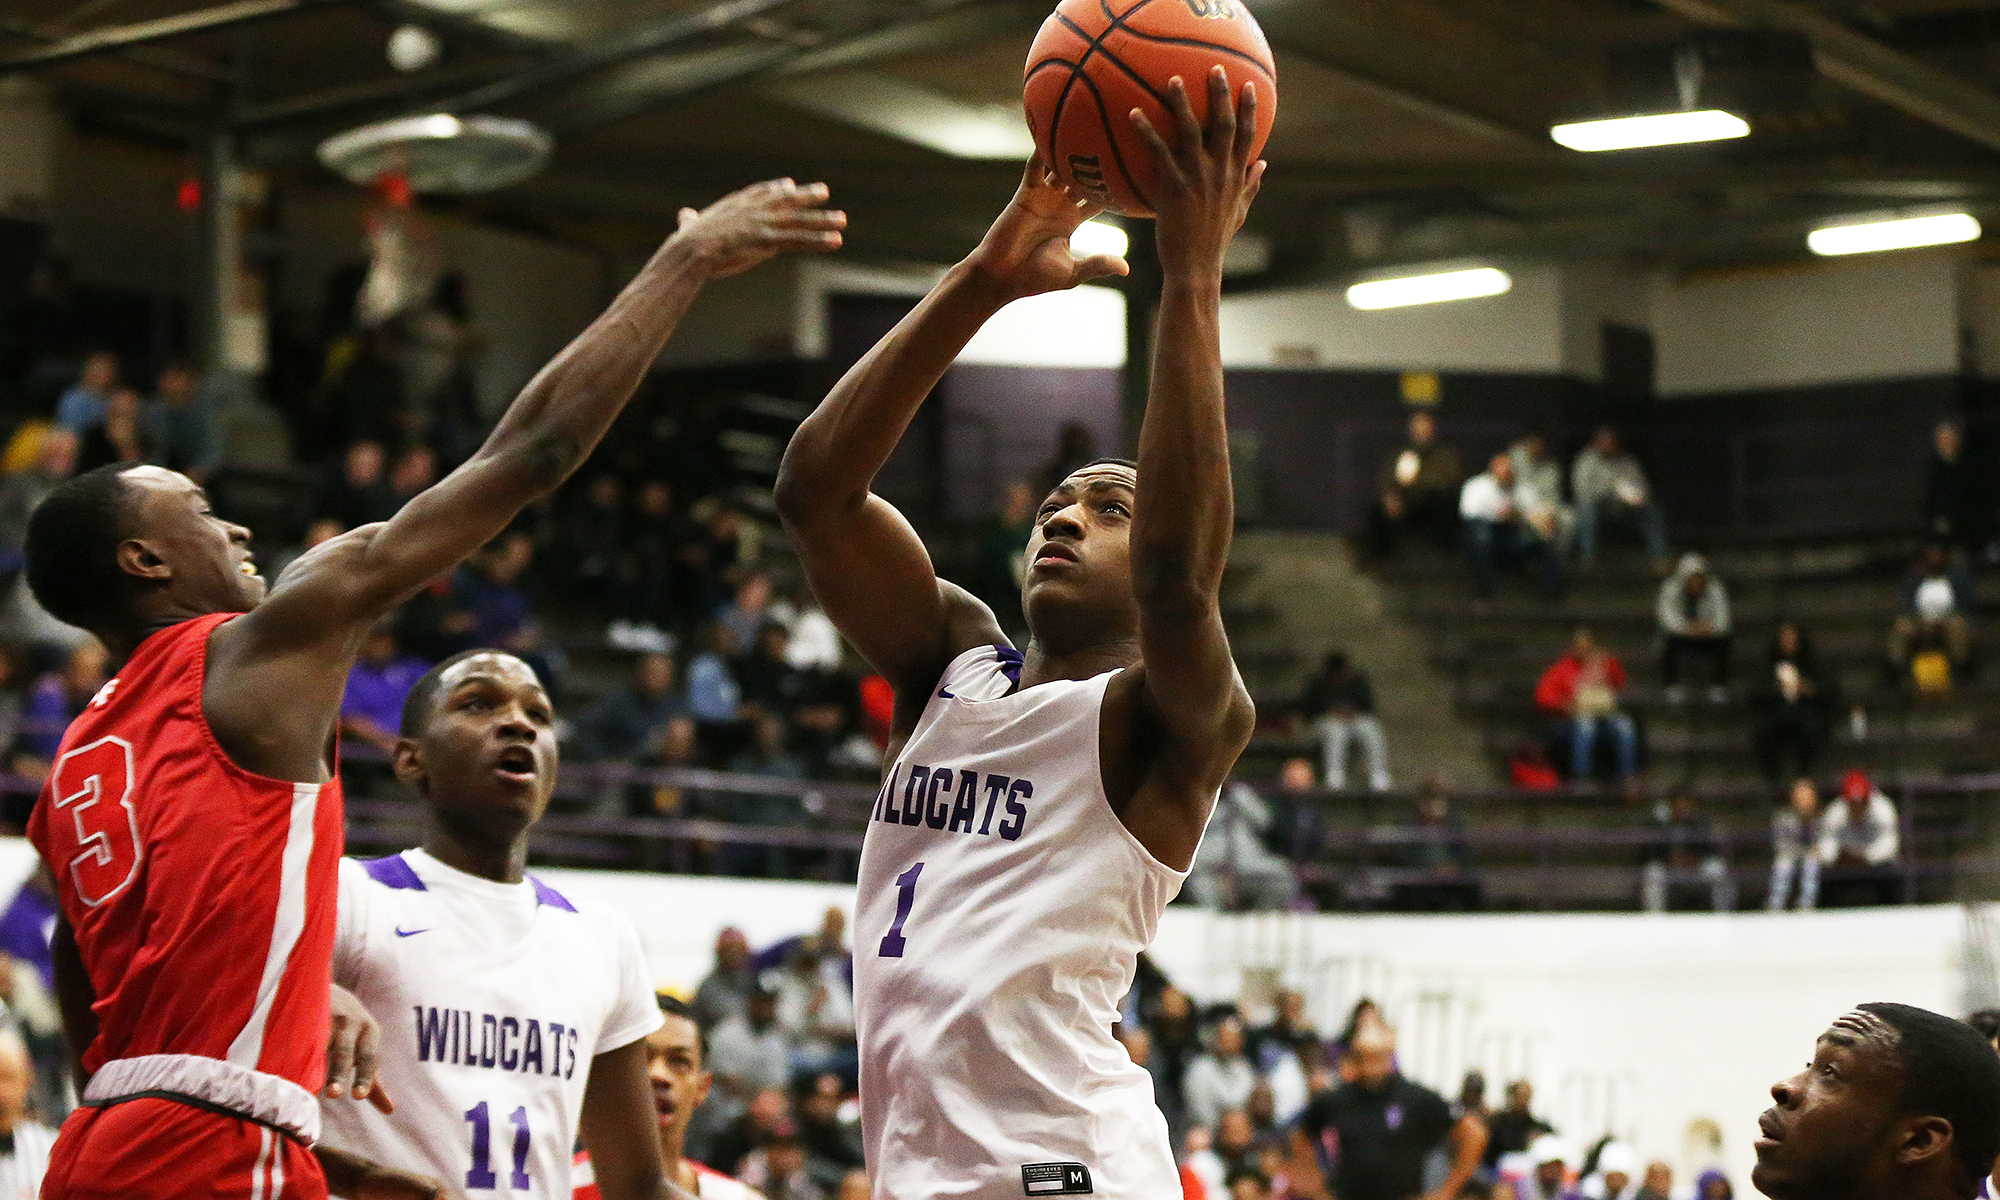 Thornton's Demarco Minor (1) grabs a rebound and puts it back up as the Wildcats play Homewood-Flossmoor.